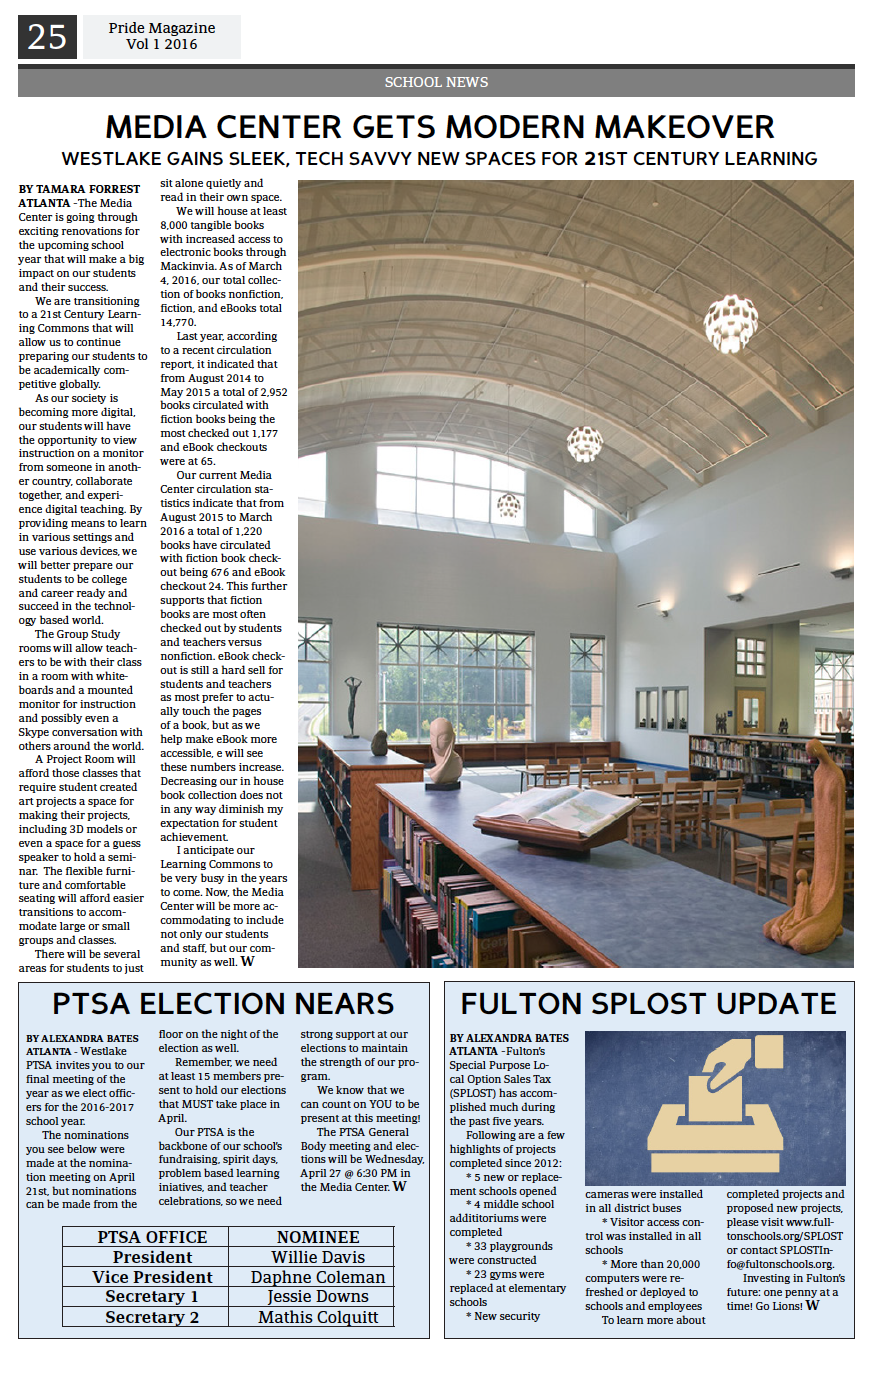 Newspaper Preview 025.png